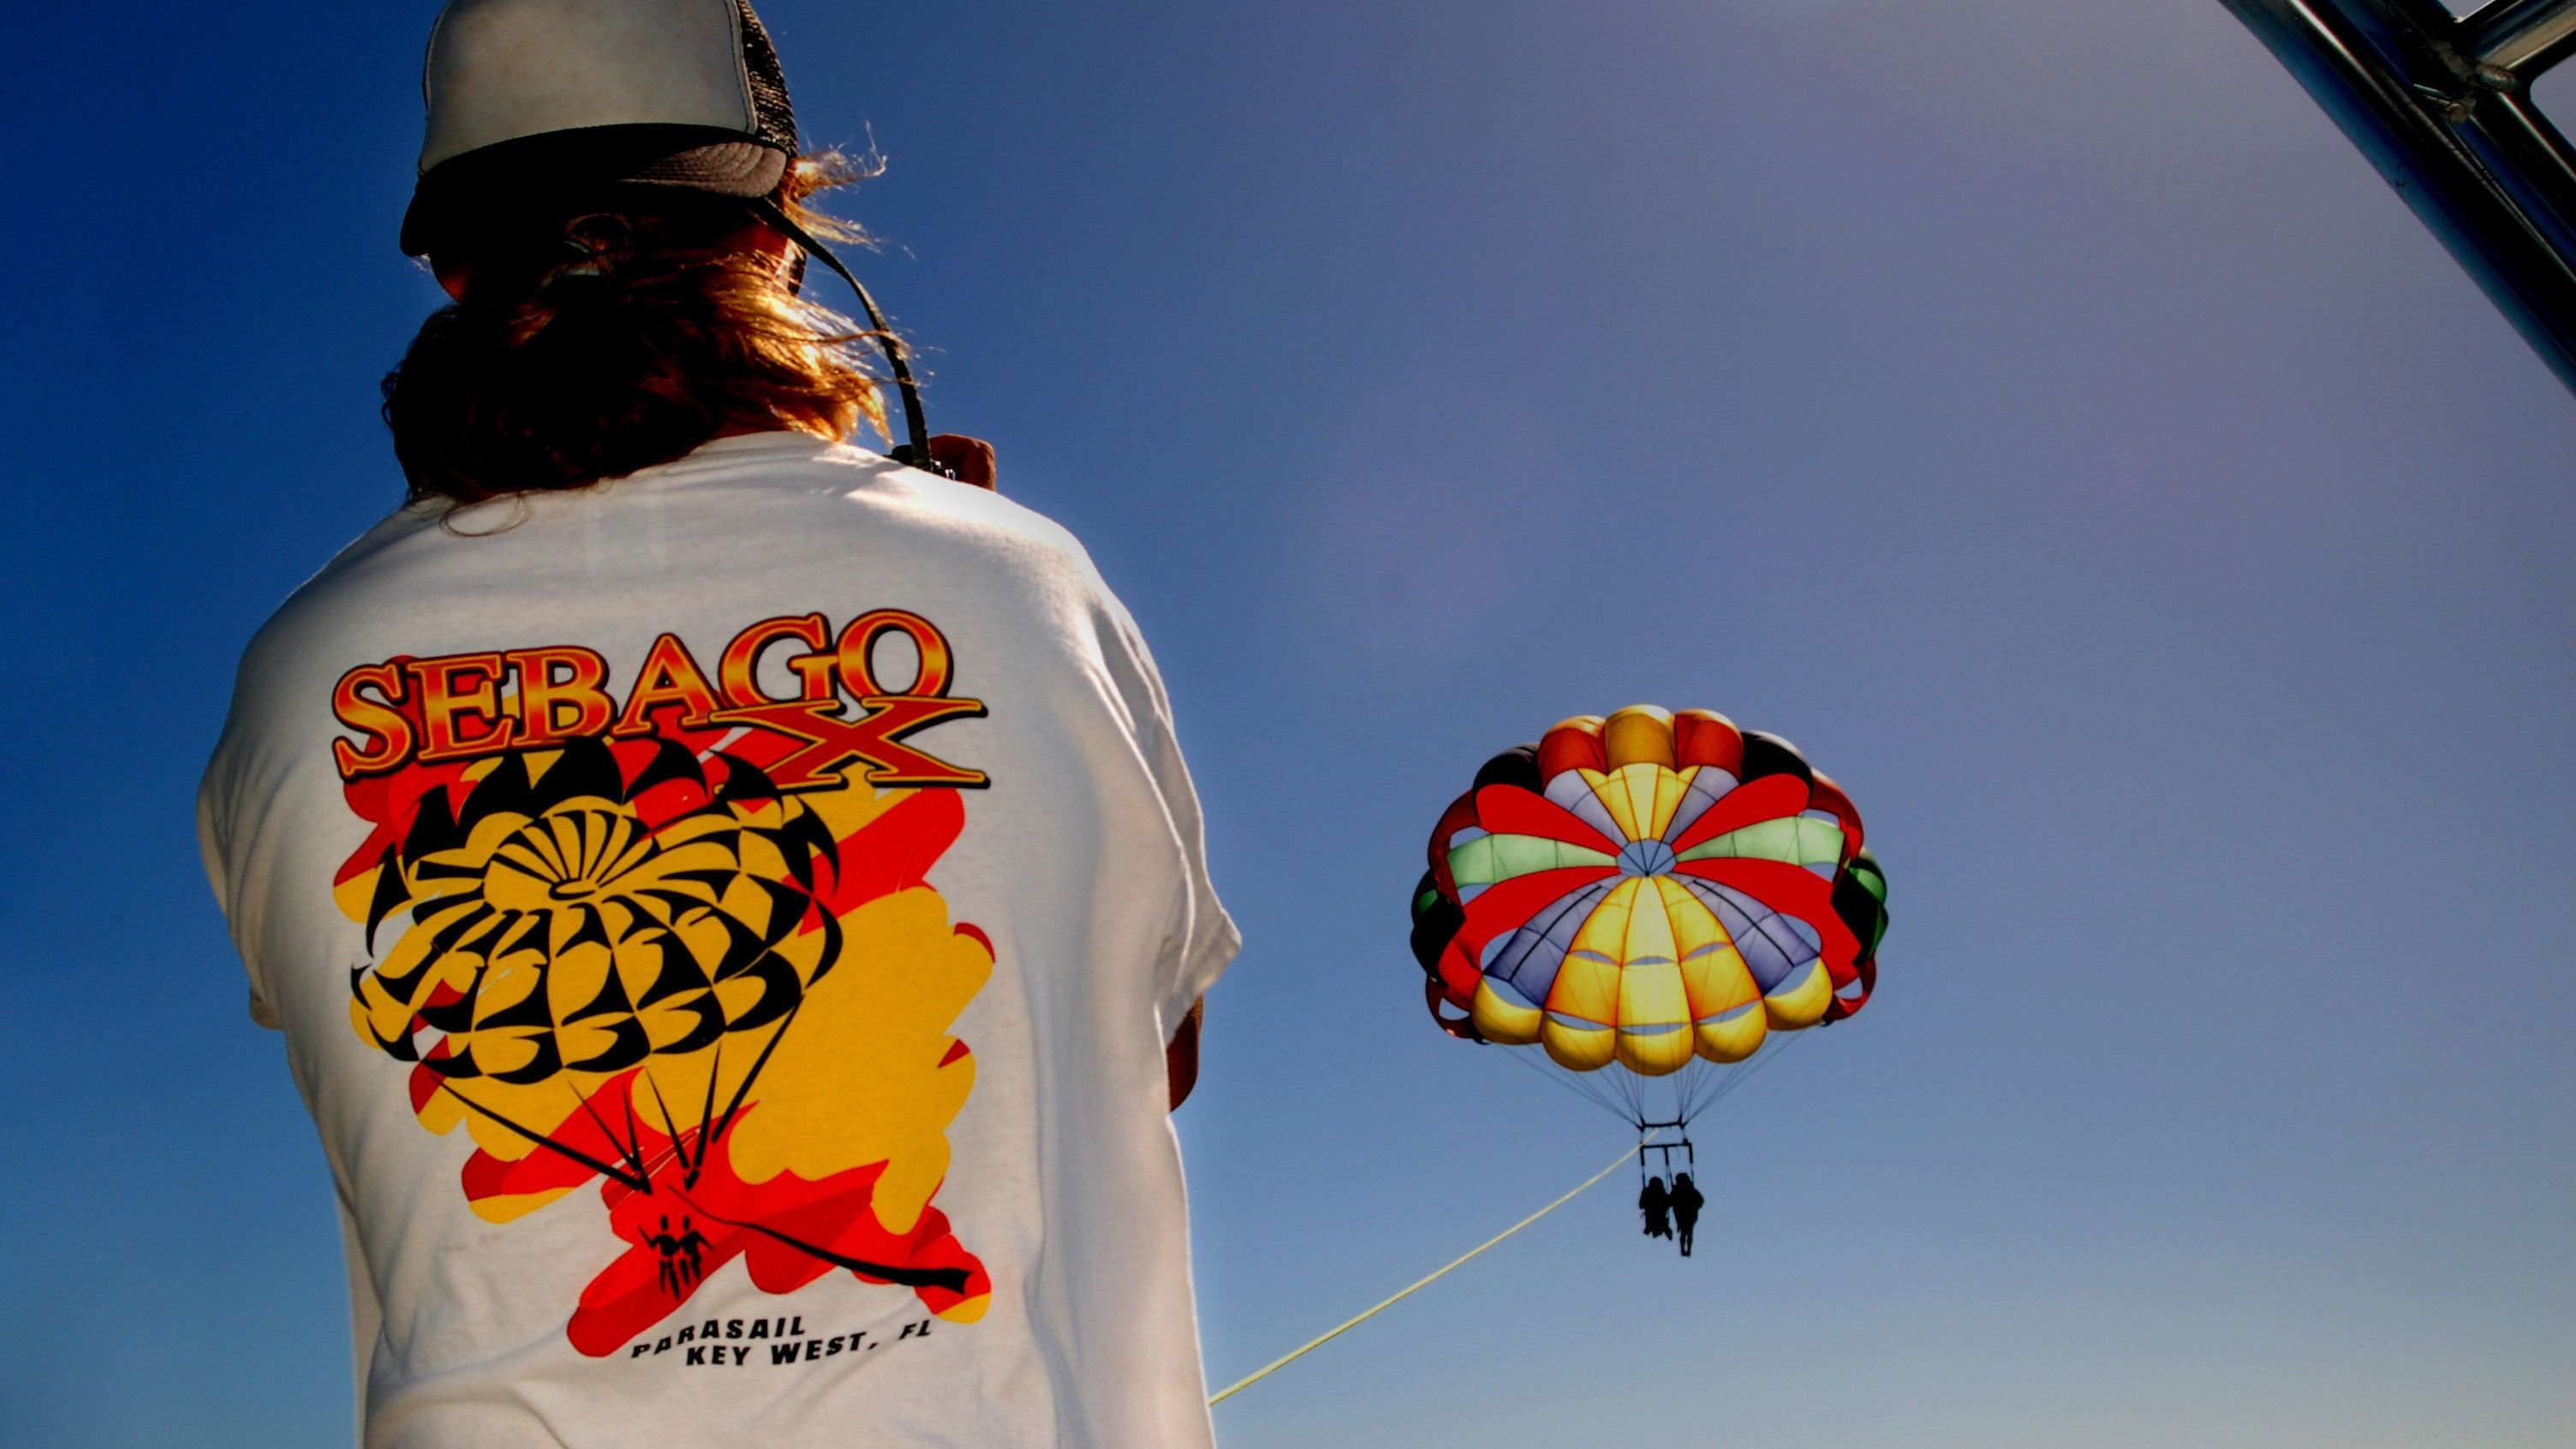 Watching parasailers in the sky at Key West